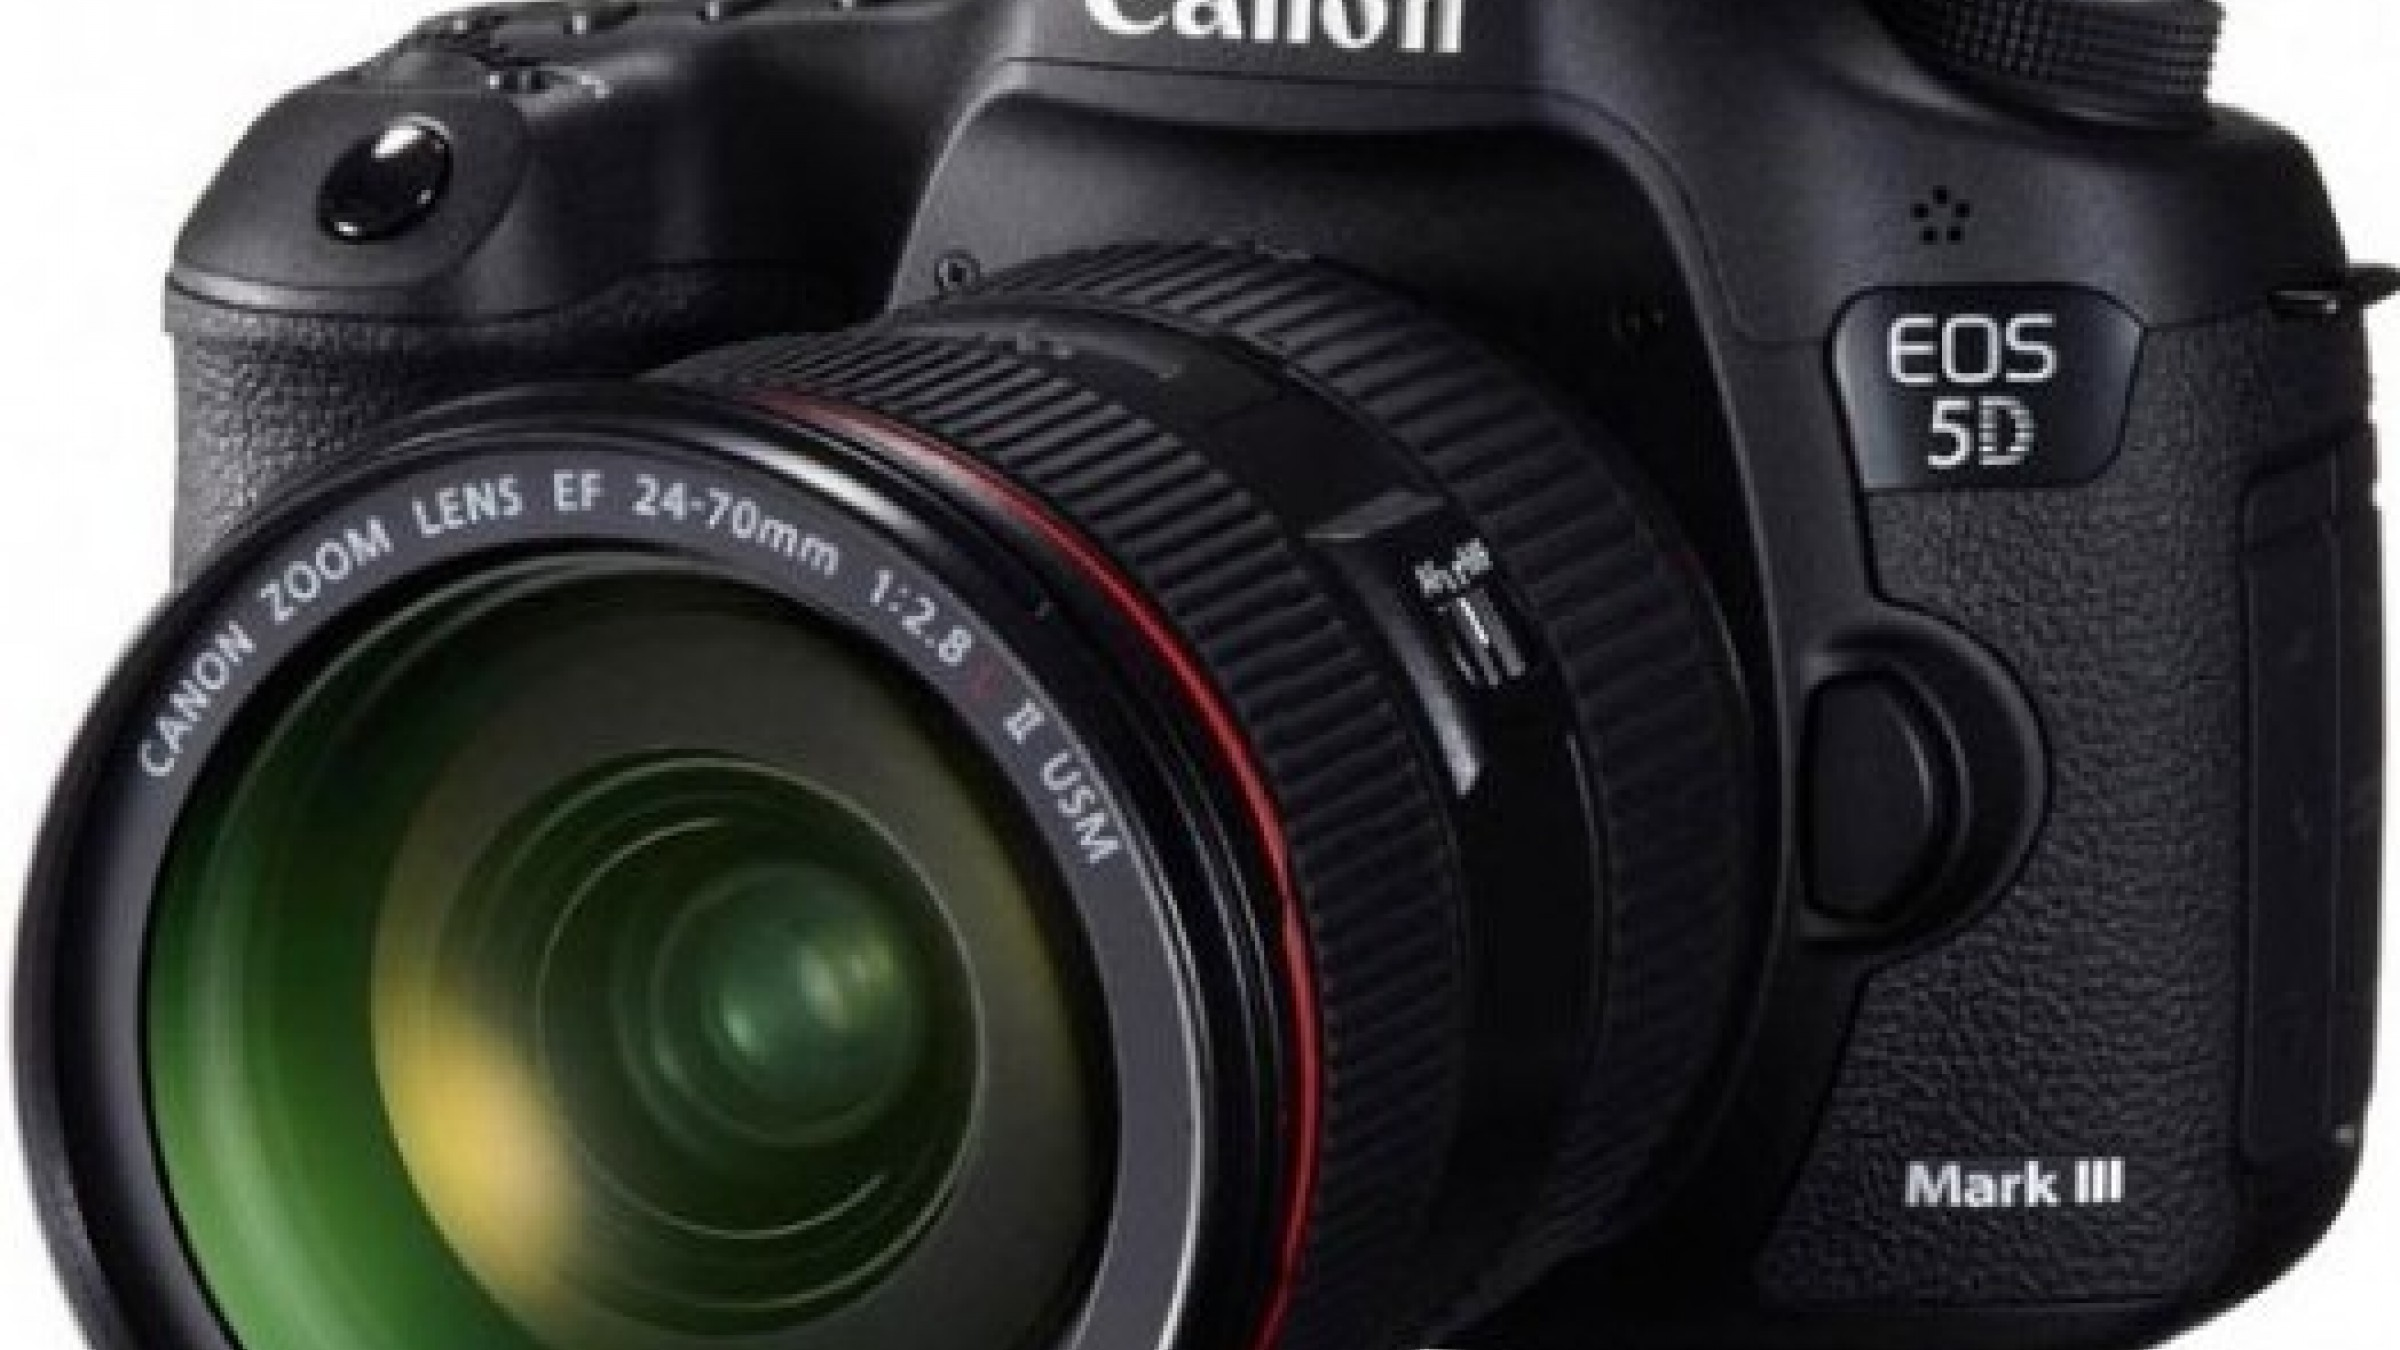 Will the Magic Lantern Canon DSLR RAW Video Hack Kill Your